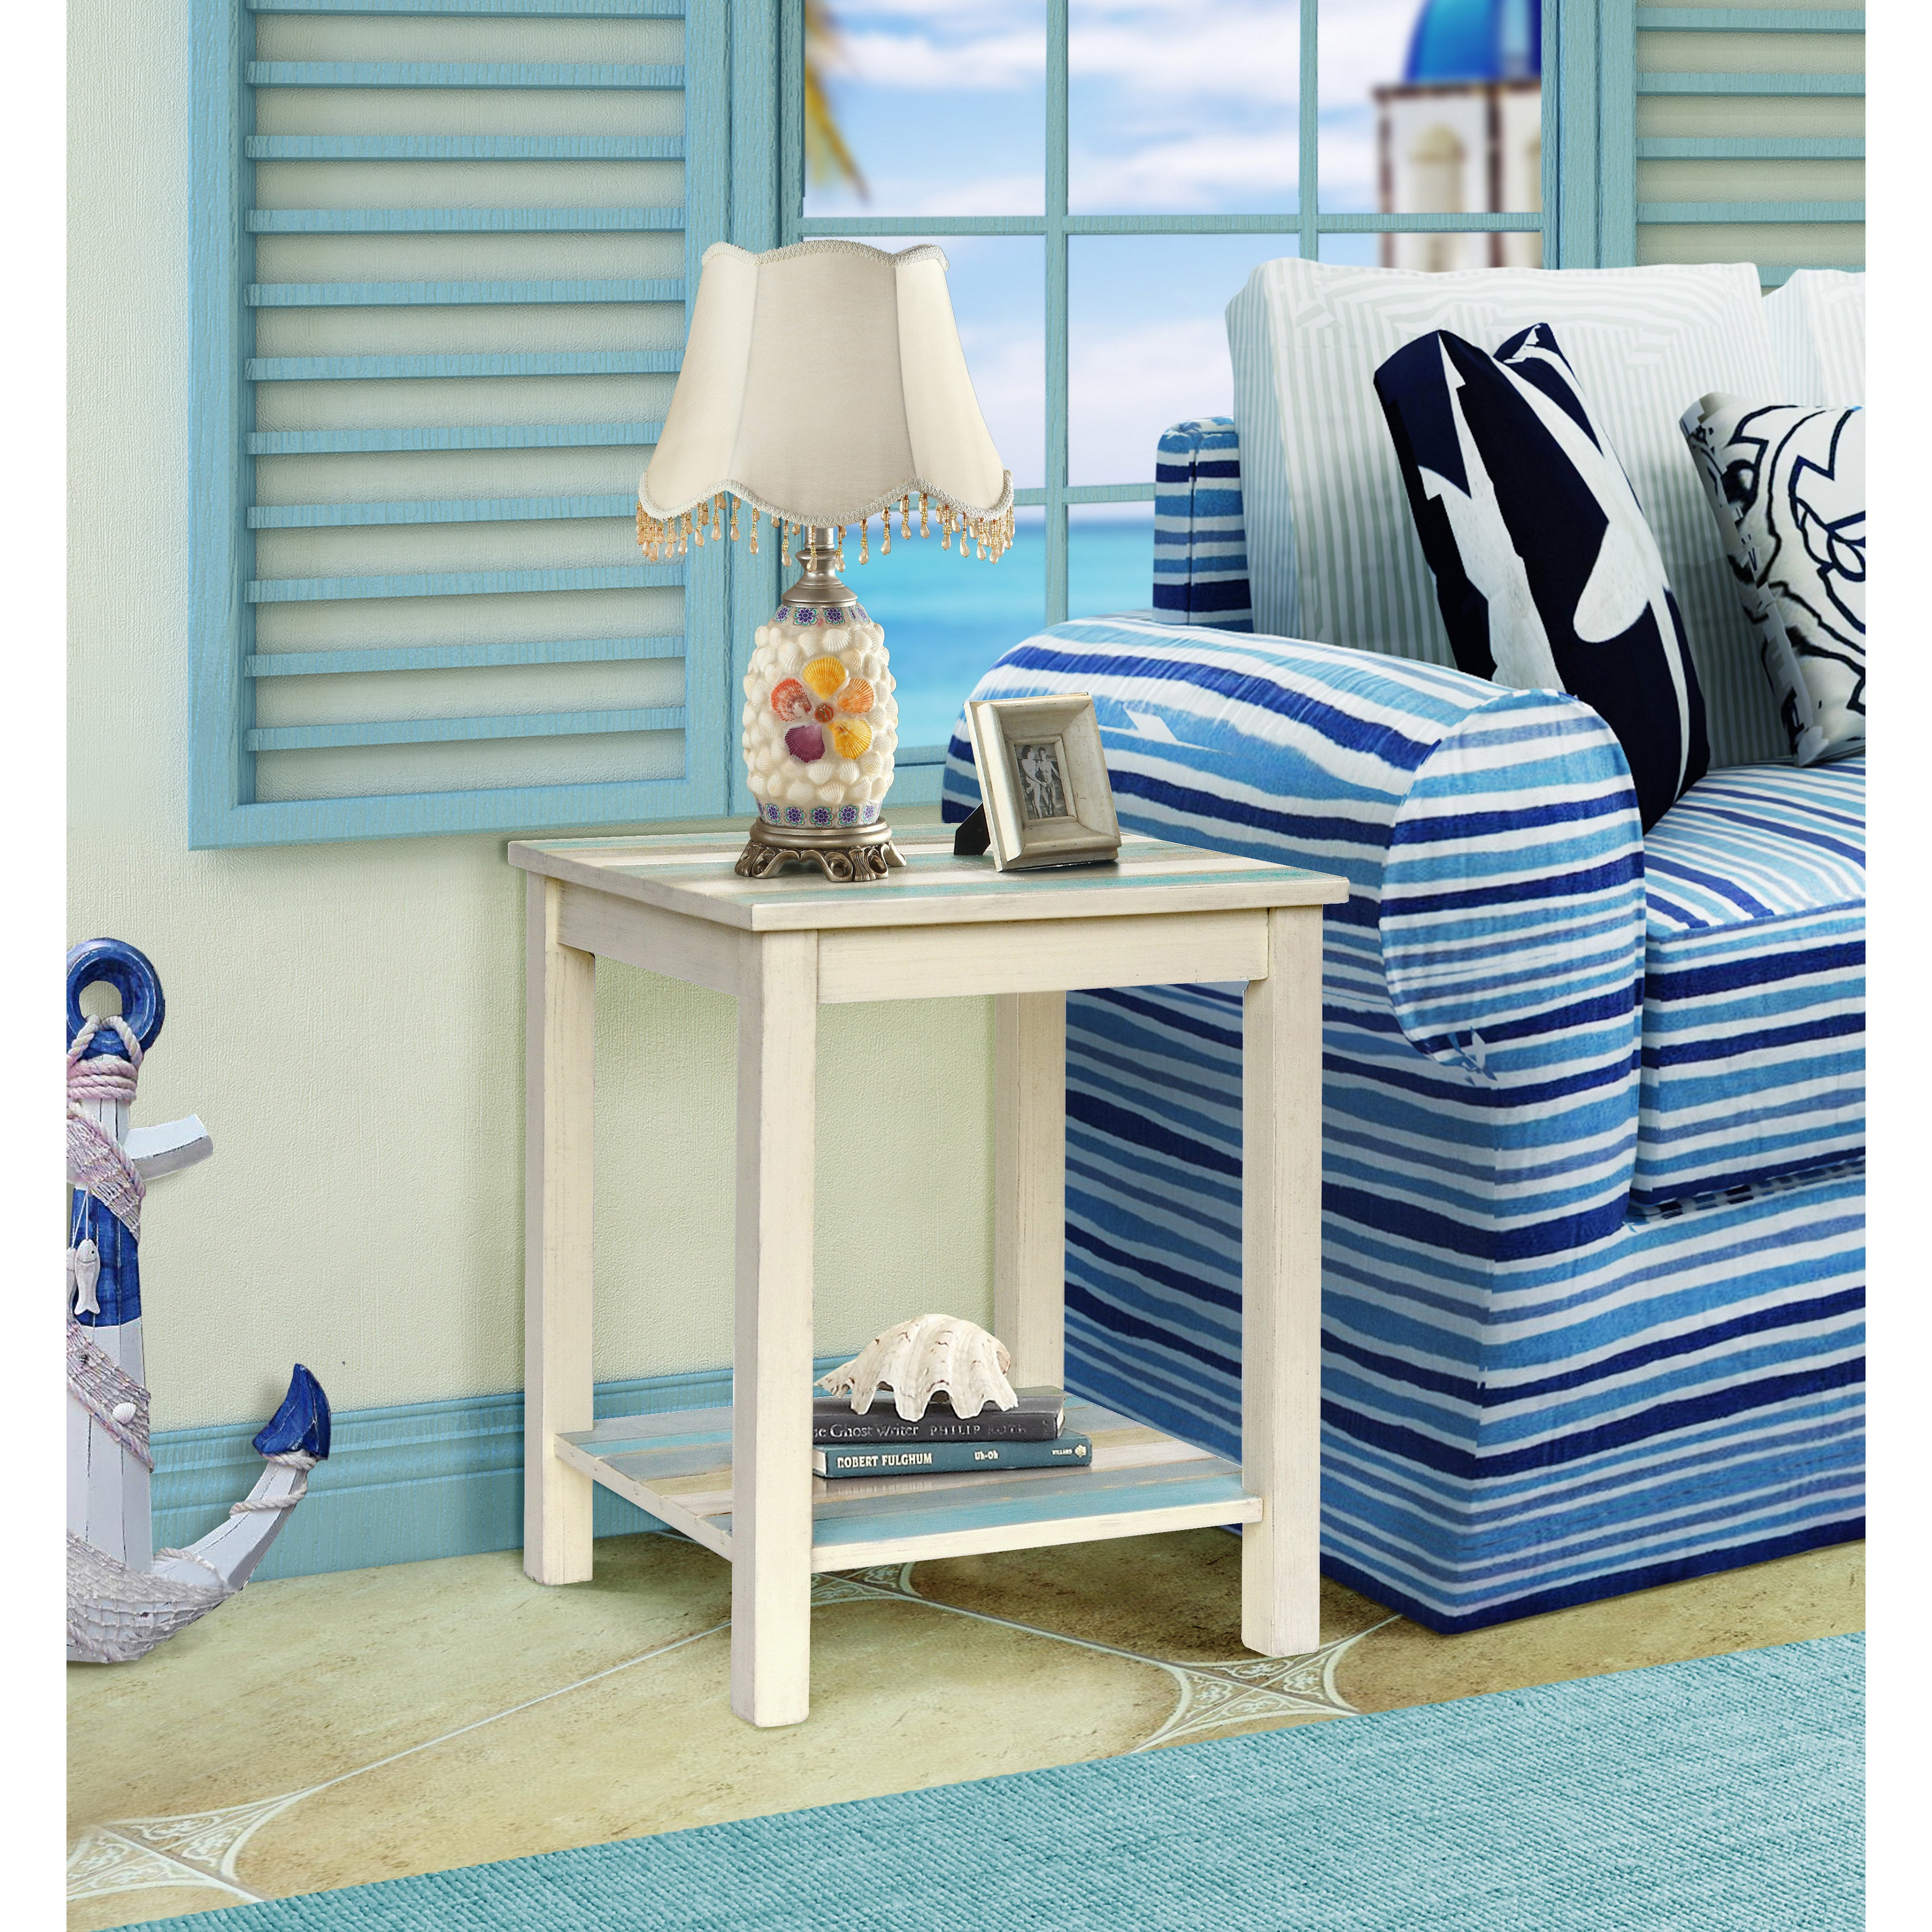 Blue, Tropical Furniture | Shop Our Best Home Goods Deals intended for Juicy Guava Credenzas (Image 6 of 30)